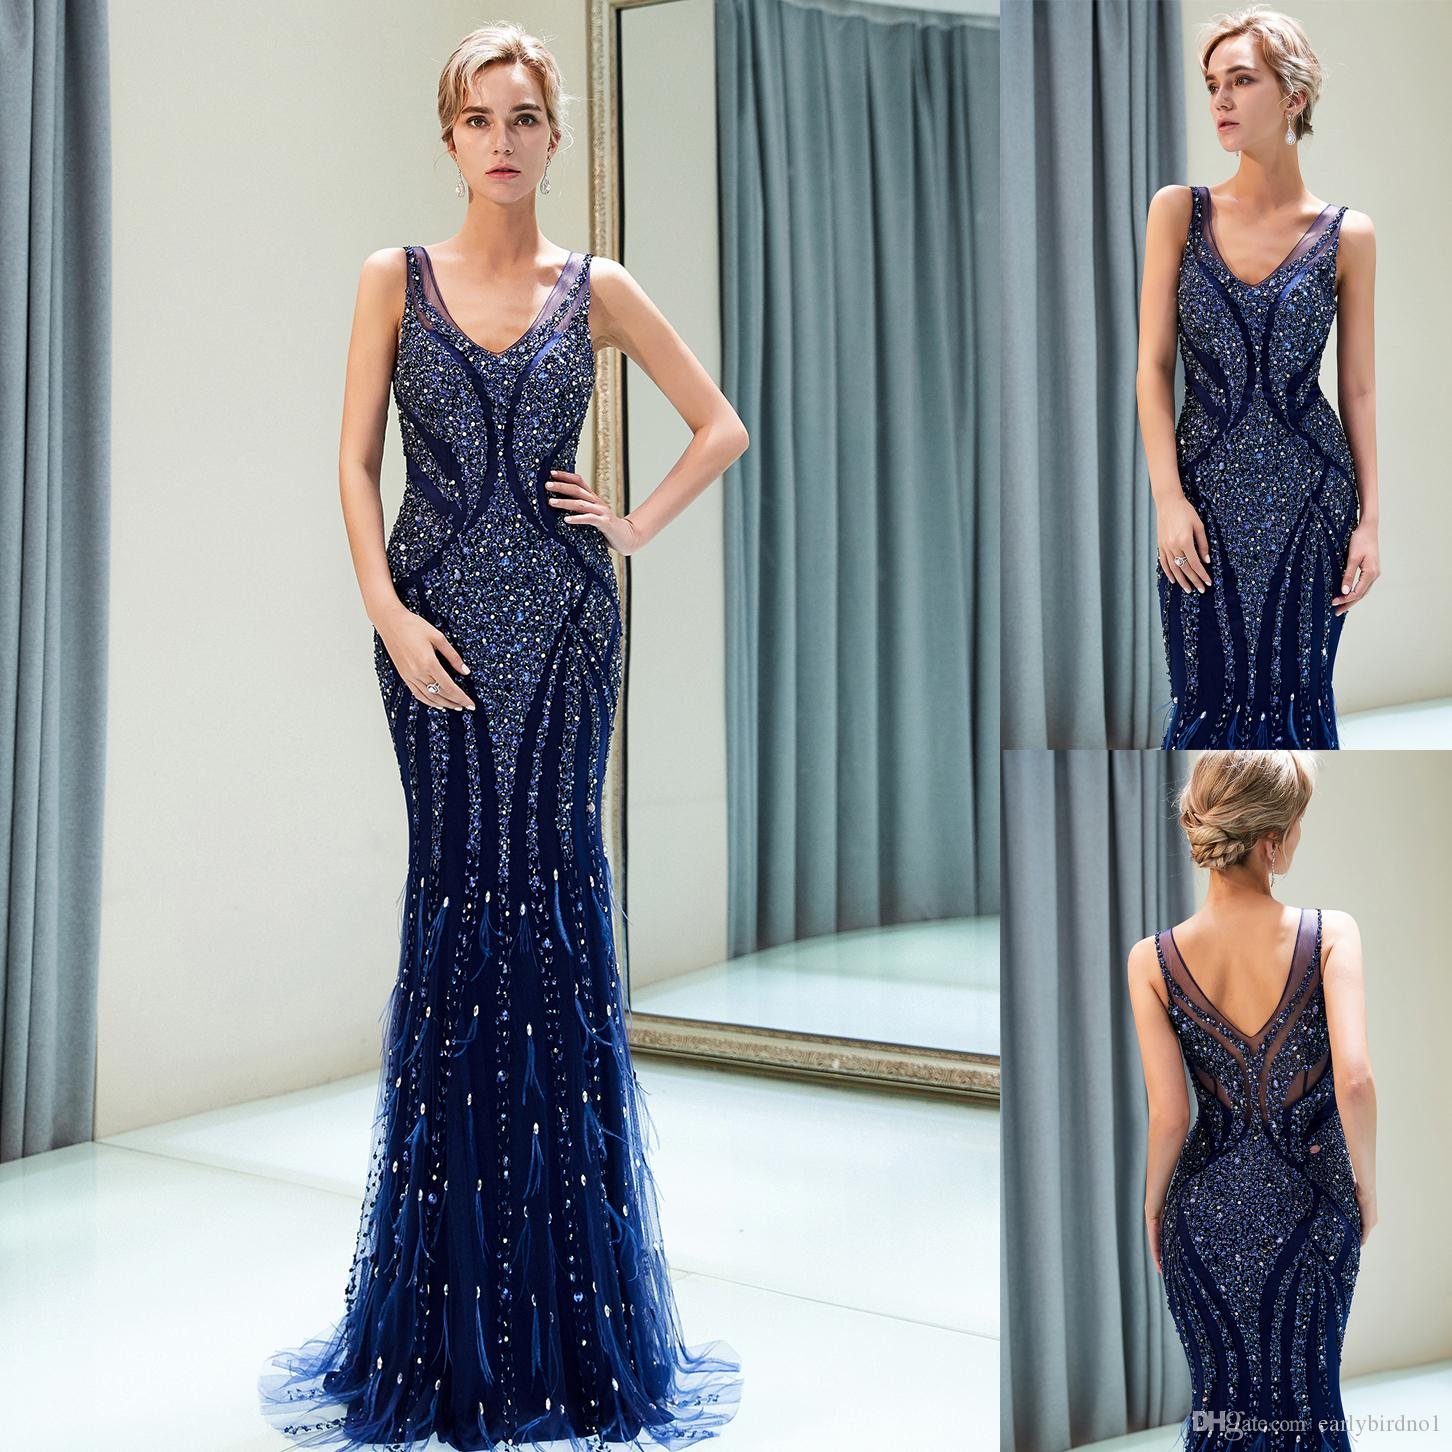 a2cf8a71edd Elegant Navy Blue Beaded Designer Evening Dresses Luxury Mermaid Straps V  Neck Floor Length Prom Ball Gown Wedding Guest Dress CPS1168 Shop Dresses  Online ...